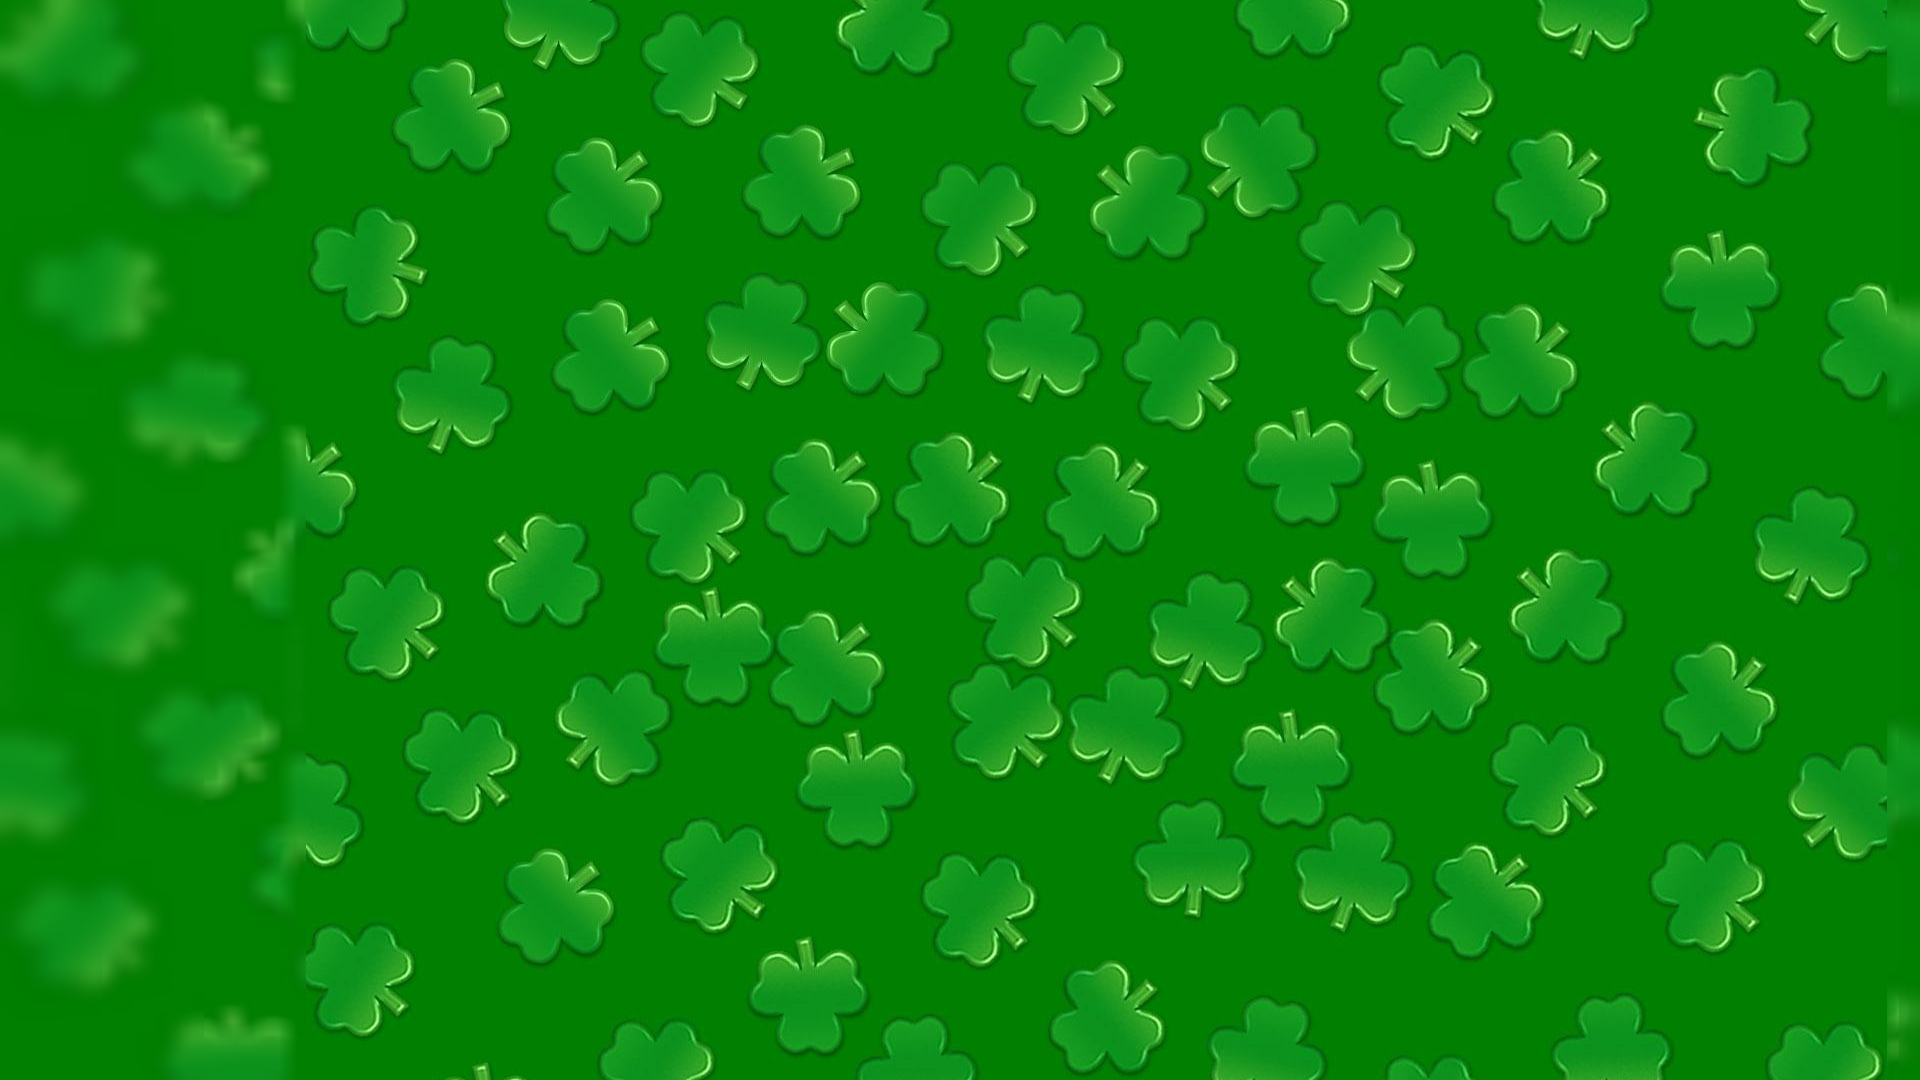 Disney St Patricks Day Wallpaper